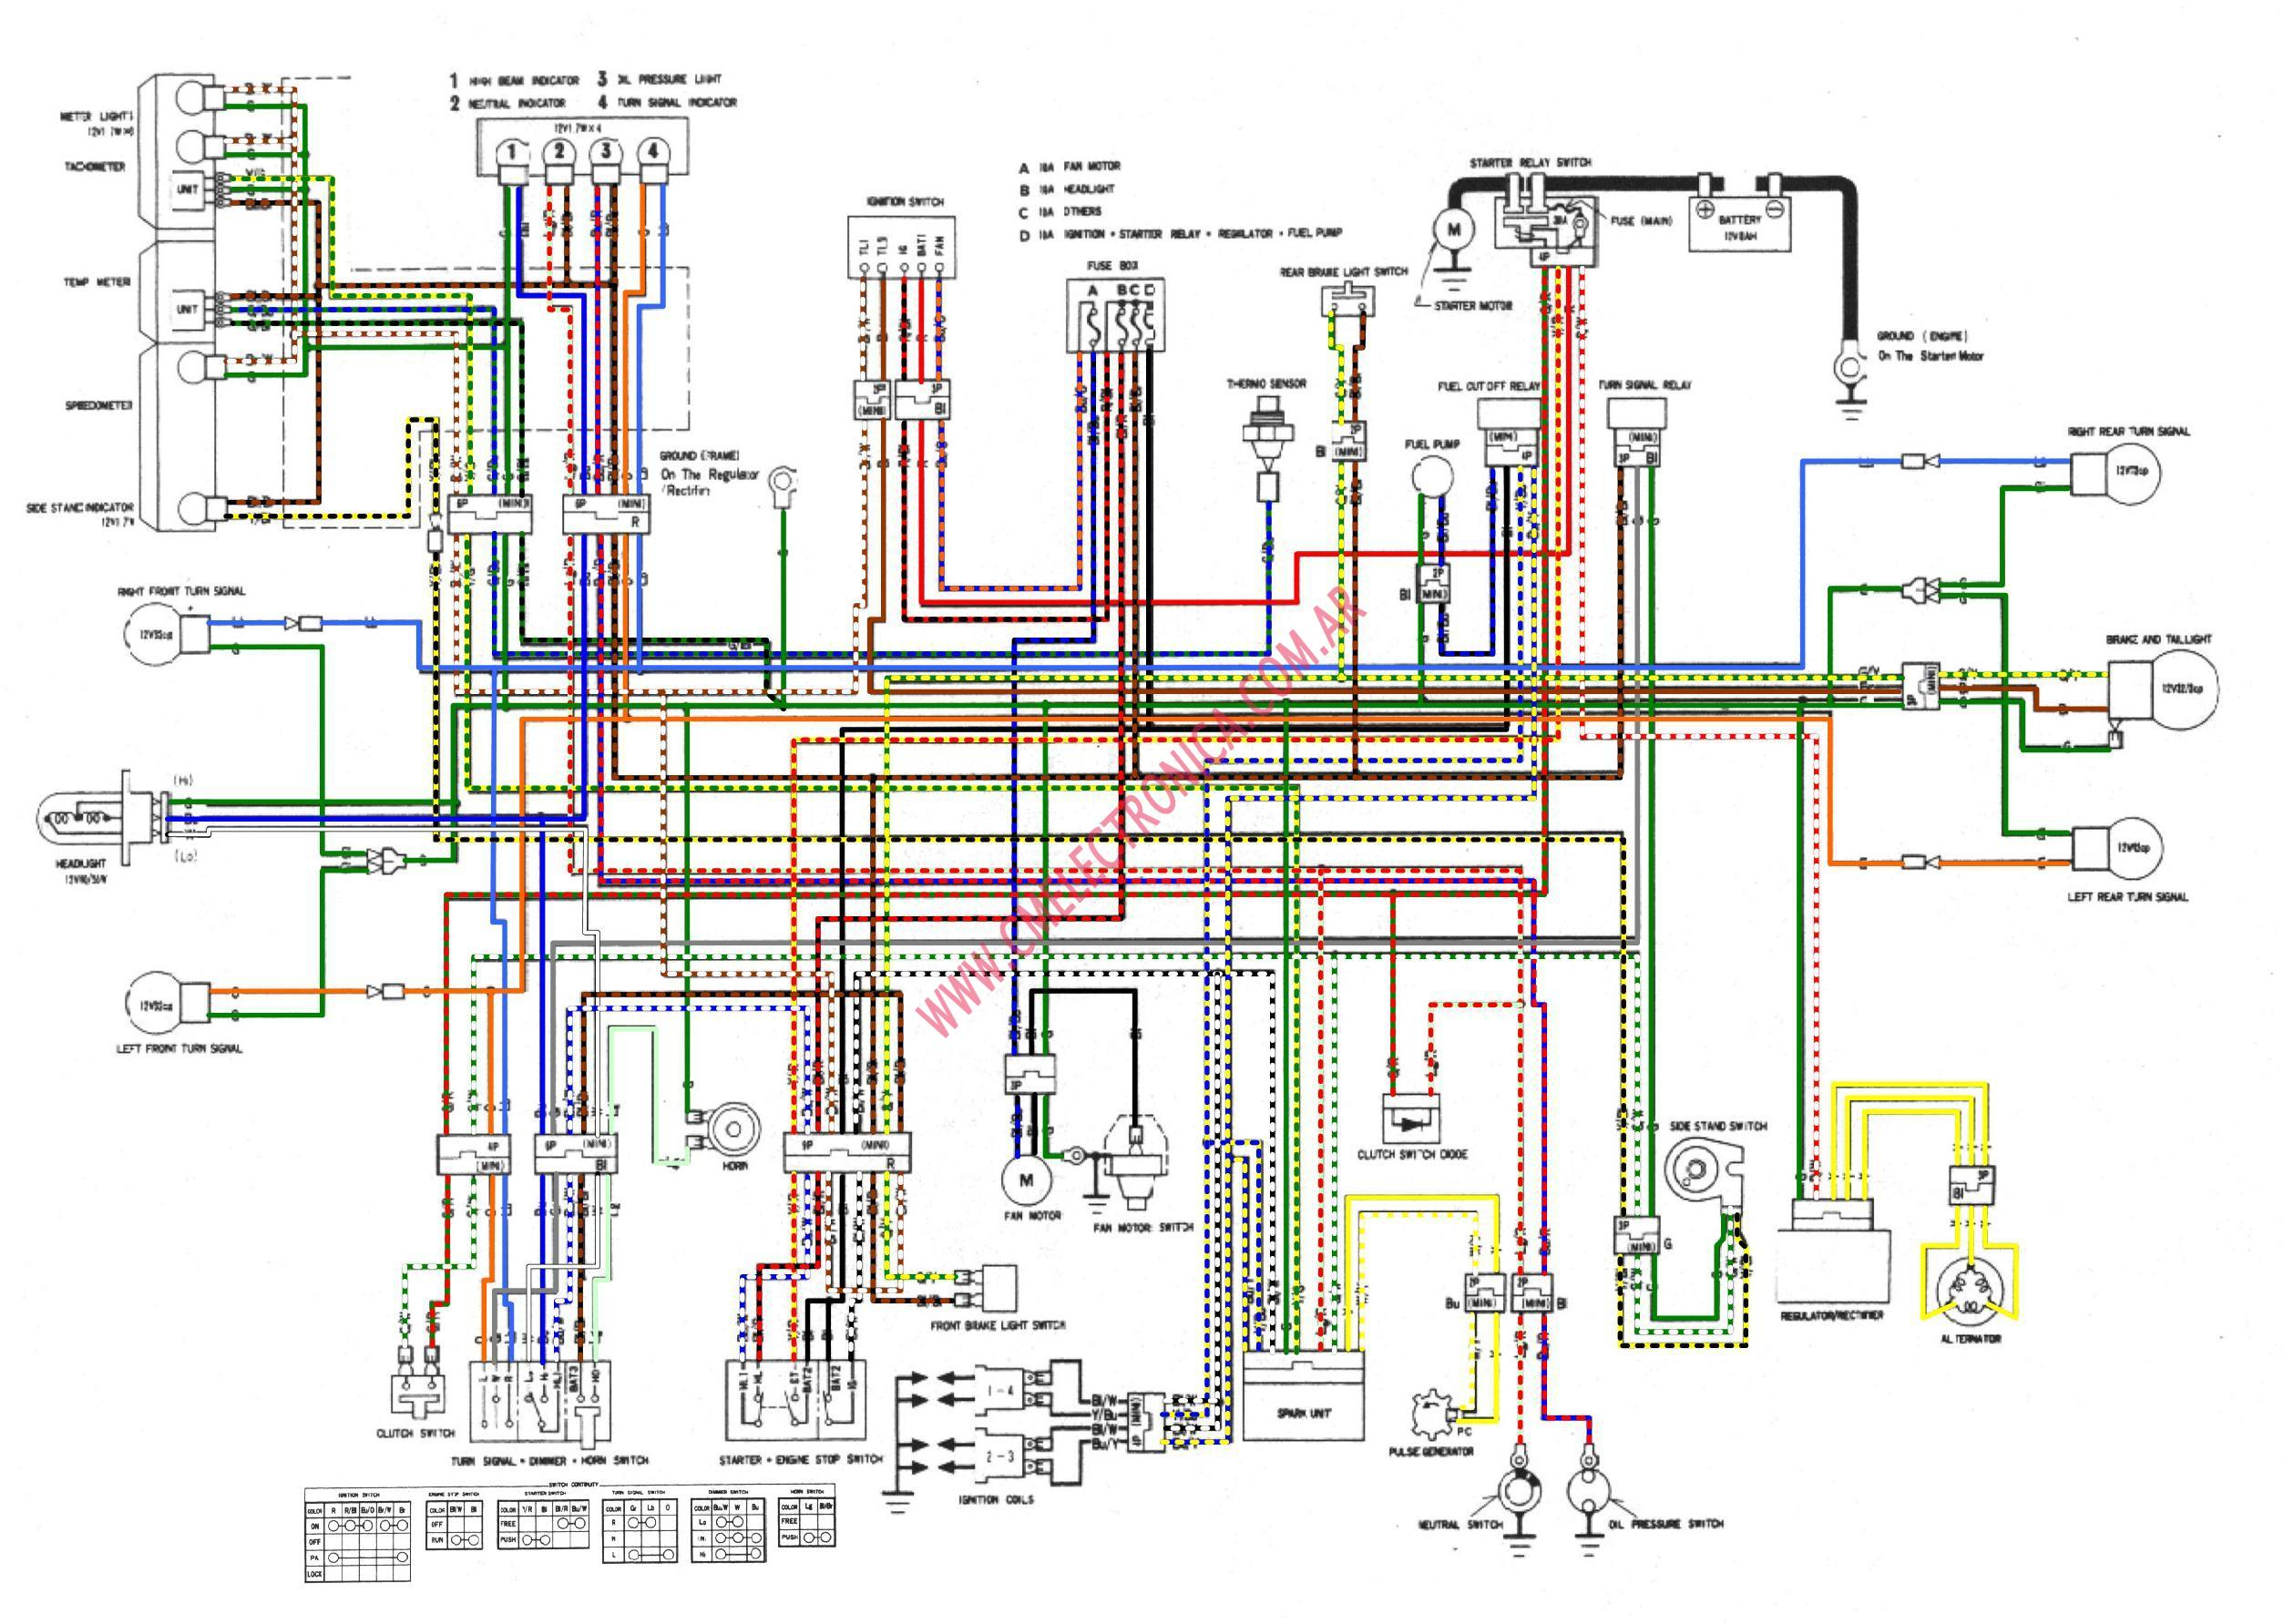 Honda Cb 1 Wiring Diagram Real Wet Jet Diagrama Cb1 1978 Cb750k